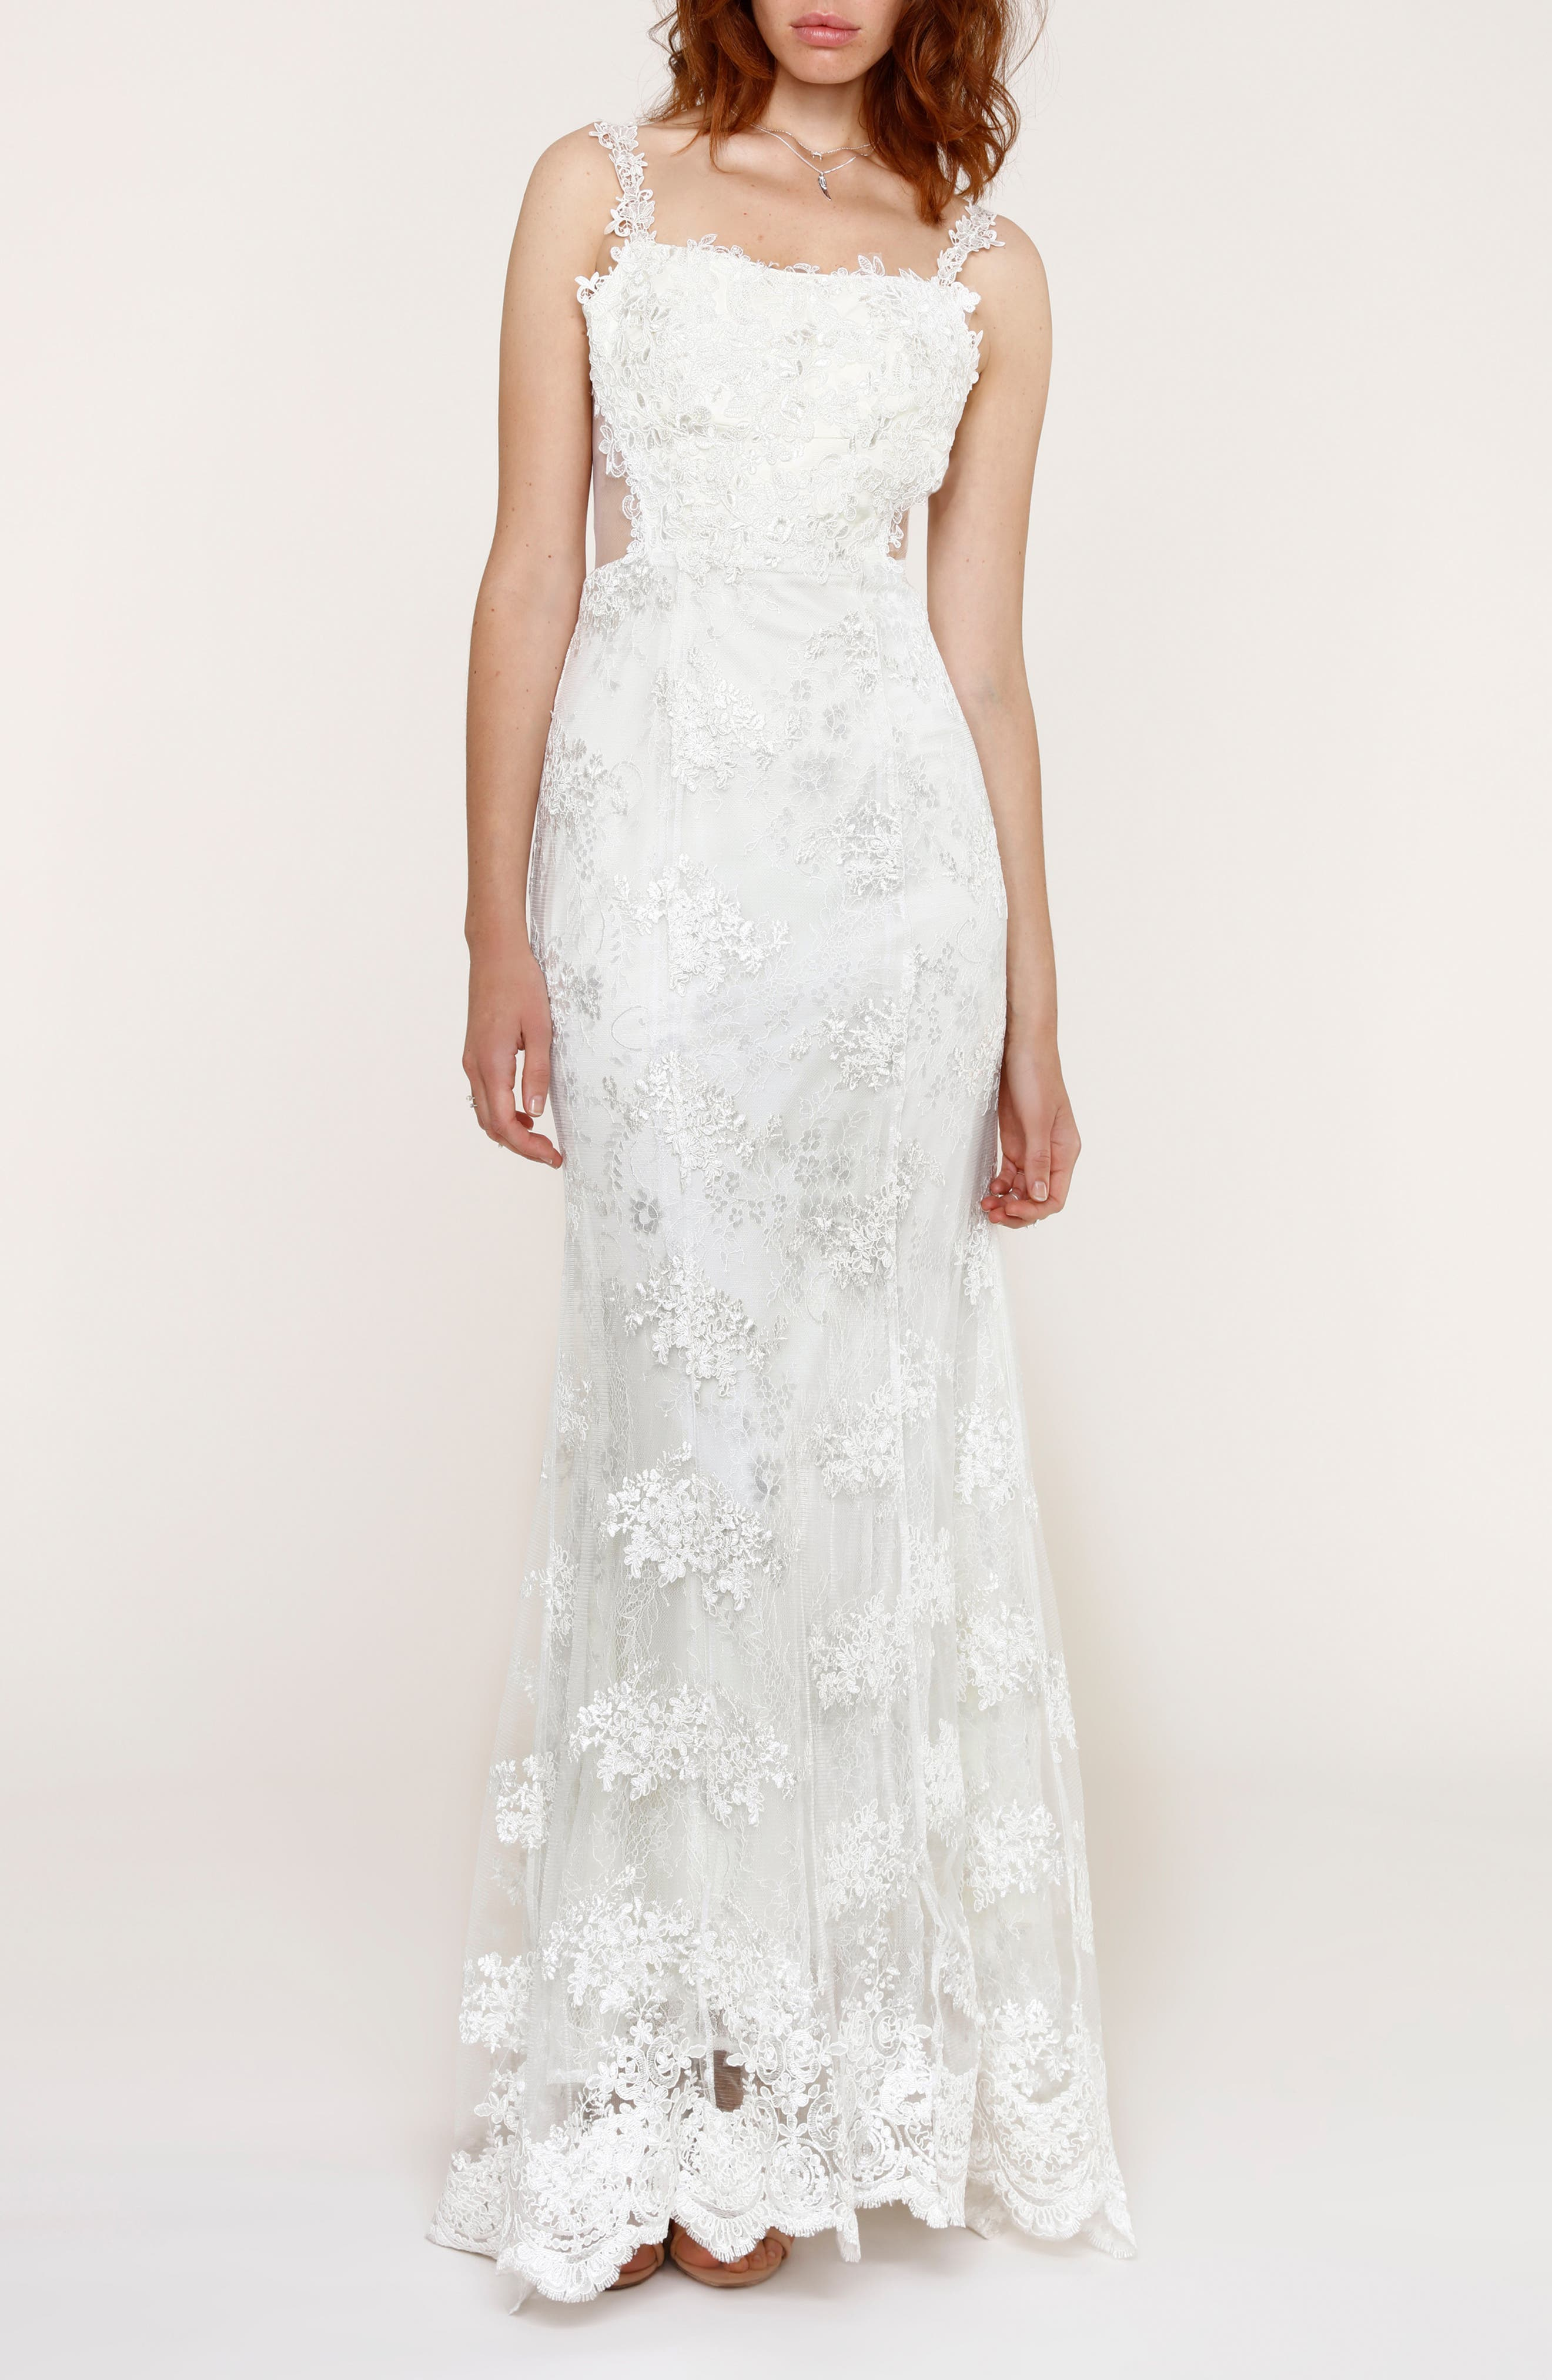 Andie Illusion Side Lace Mermaid Gown,                             Main thumbnail 1, color,                             900